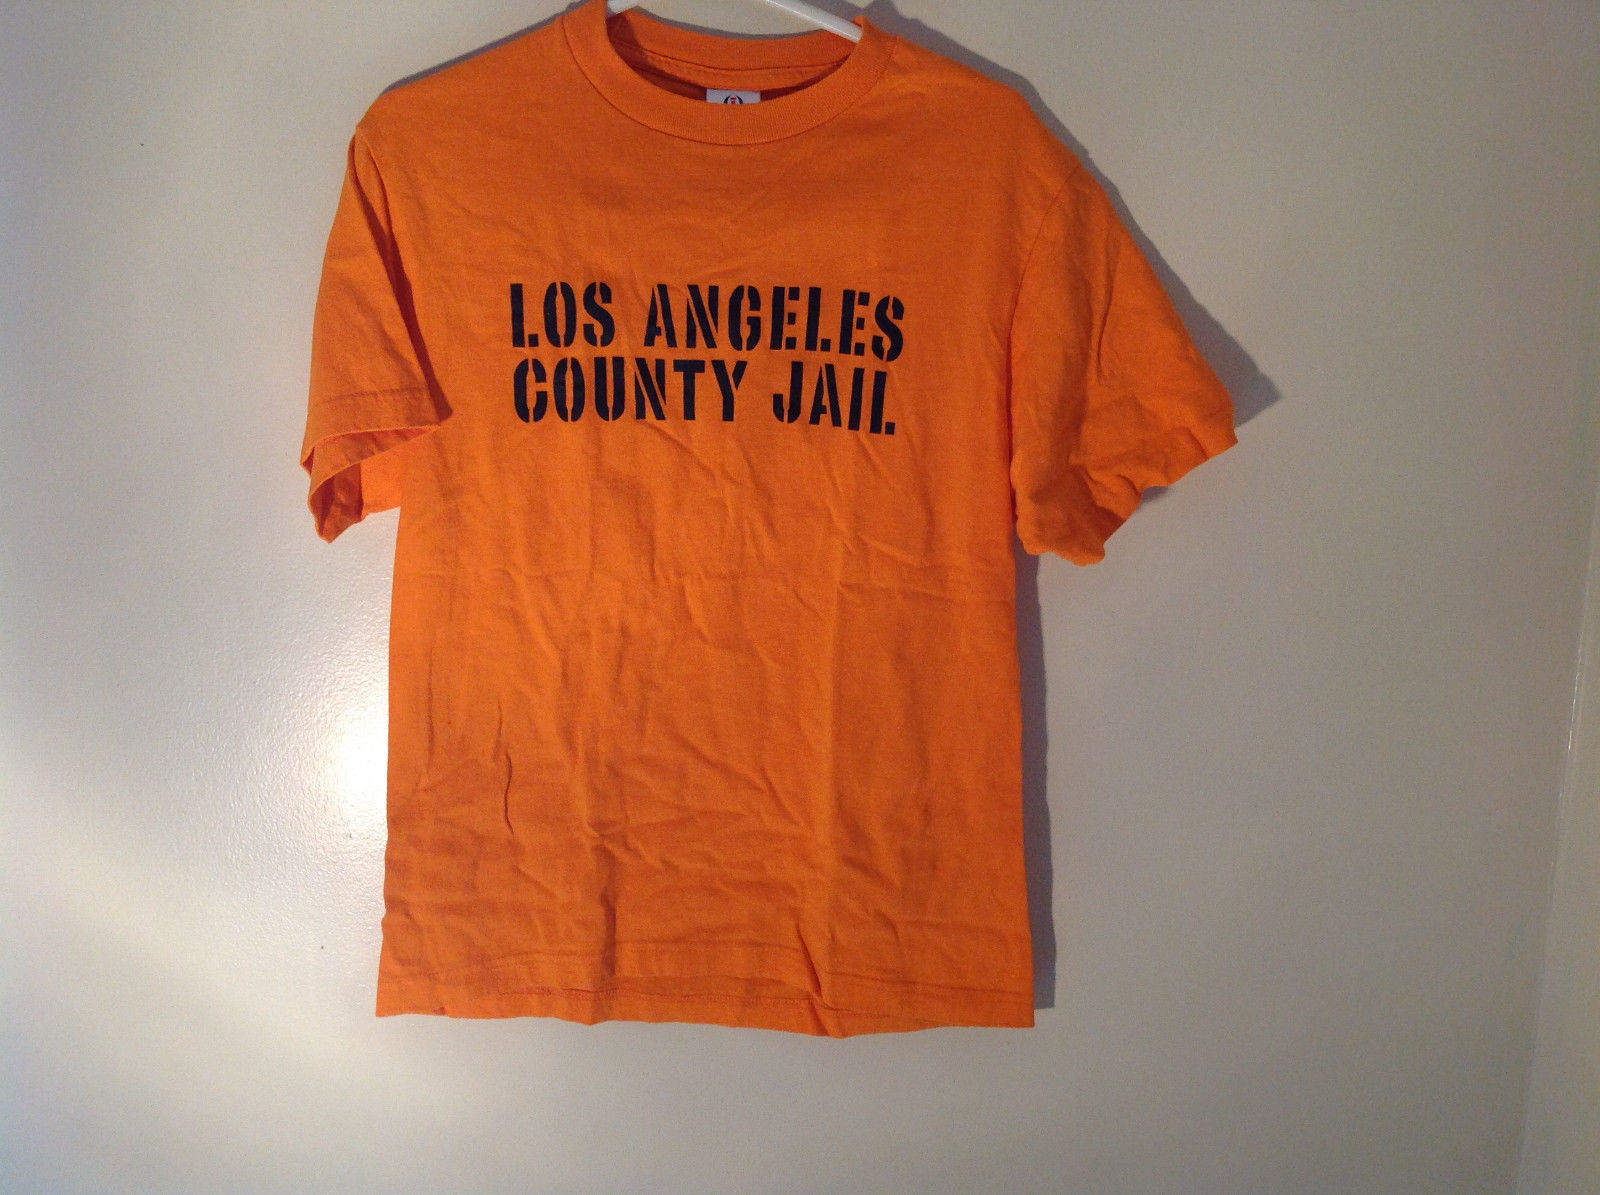 Intex Bright Orange Short Sleeve T-Shirt Los Angeles County Jail on Front Size M